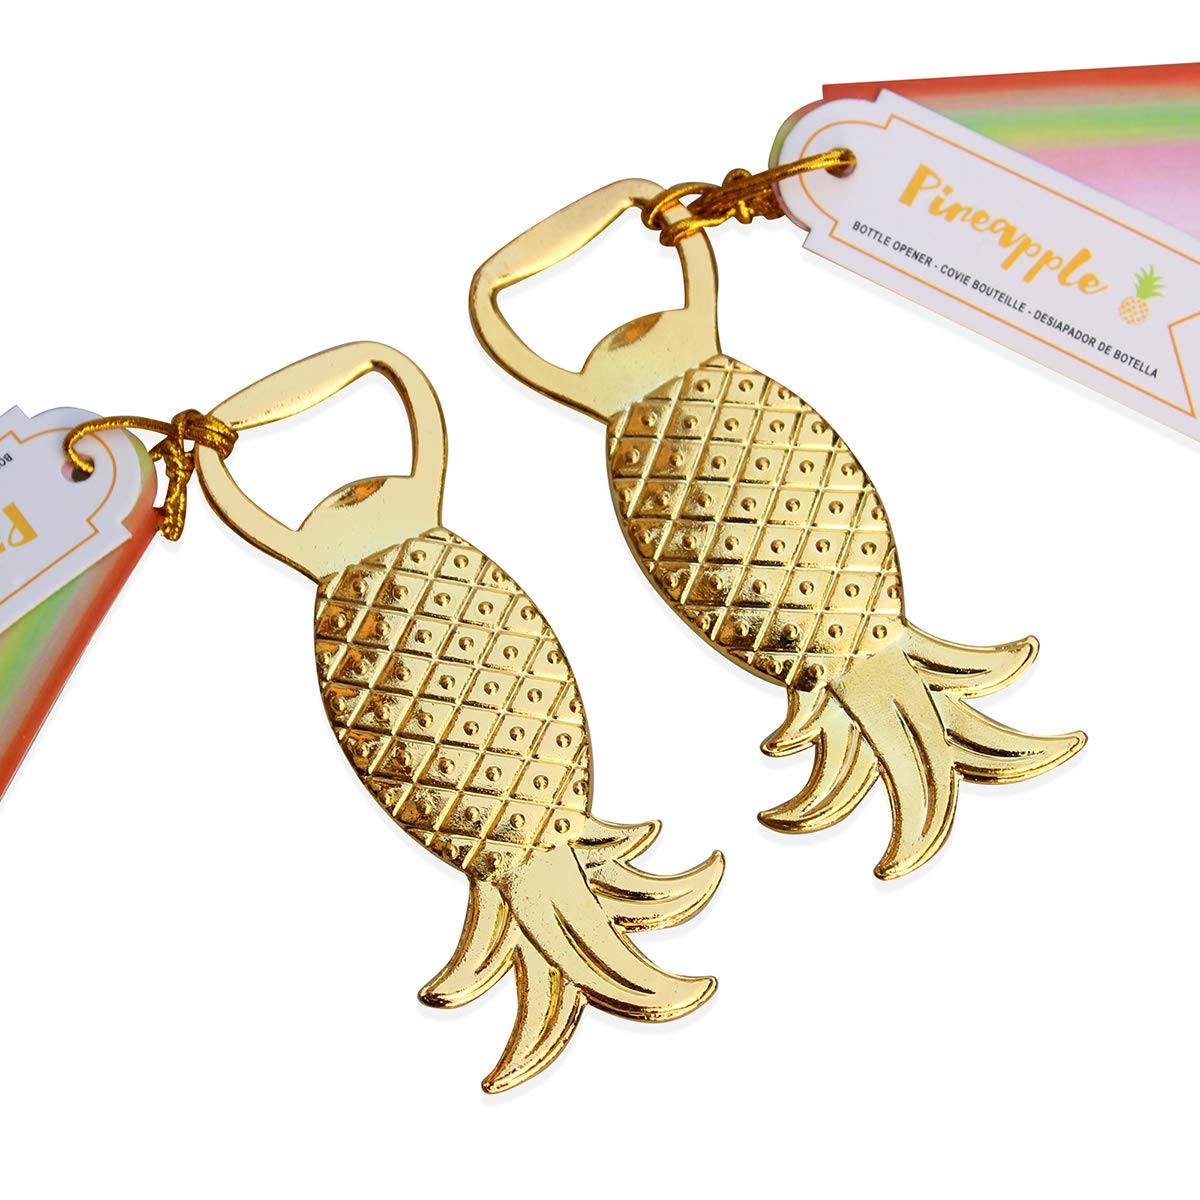 WeddParty 24 PCS Wedding Favor for Guest, Unique Golden Pineapple Shaped Beer Bottle Opener Party Favor with Escort Tag Card for Birthday Baby Shower Favors Gift & Decorations (Pineapple 24pcs)